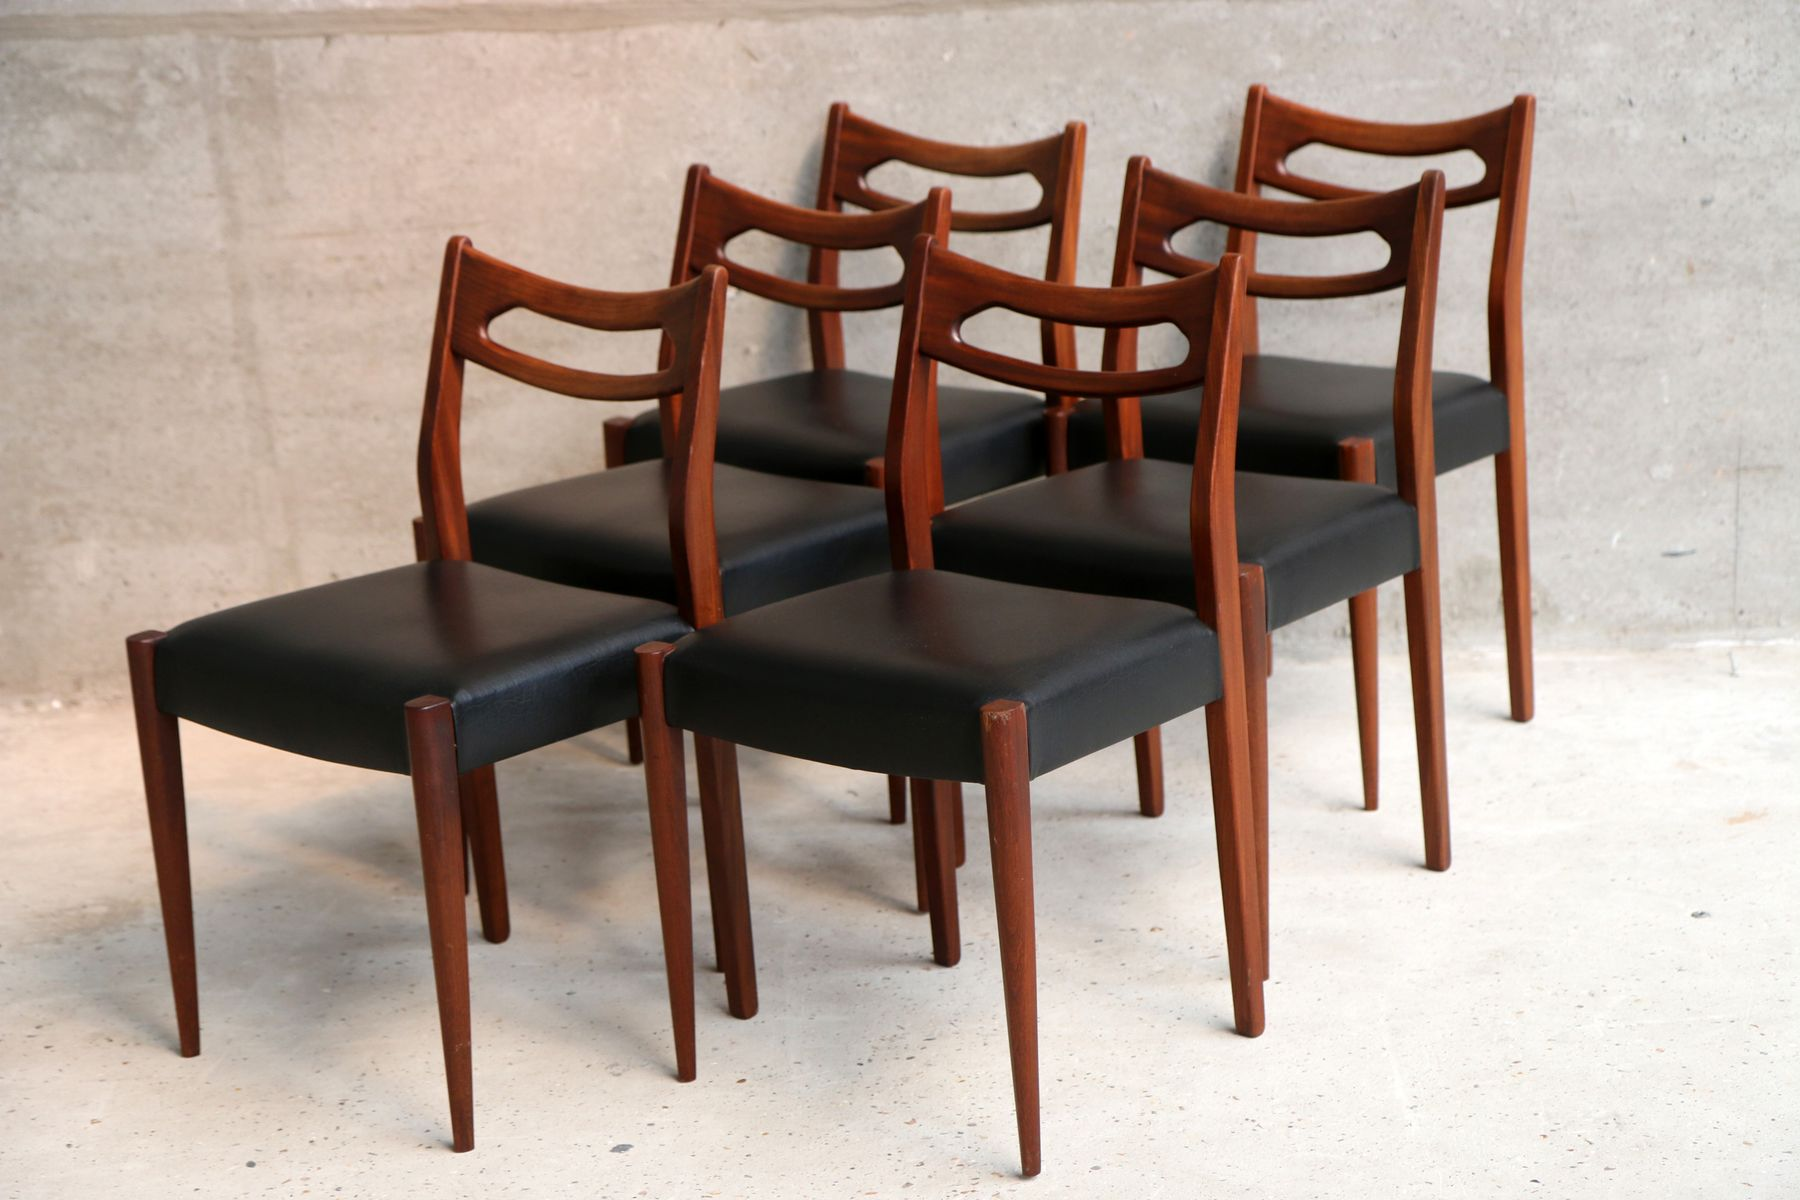 Vintage Black Vinyl Dining Chairs Set Of 6 For Sale At Pamono